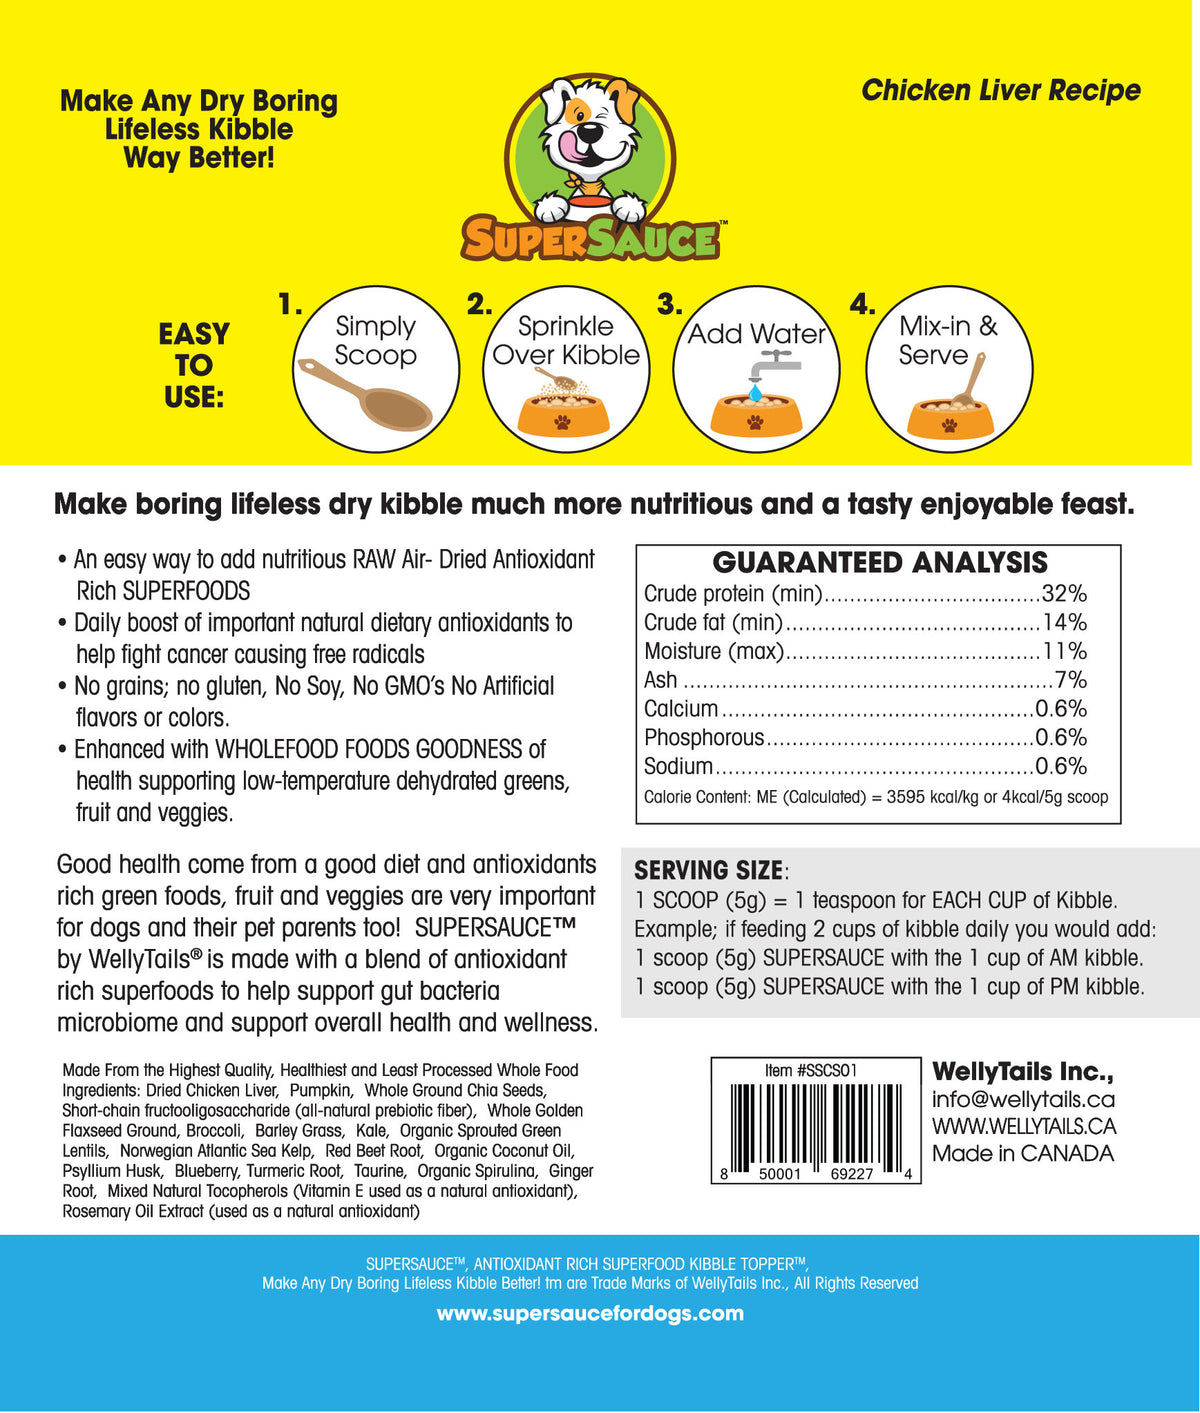 Chicken Liver + SUPERFOODS 5.4 oz. (153g) MADE IN CANADA (Natural Nutrient Guide) Welly Tails